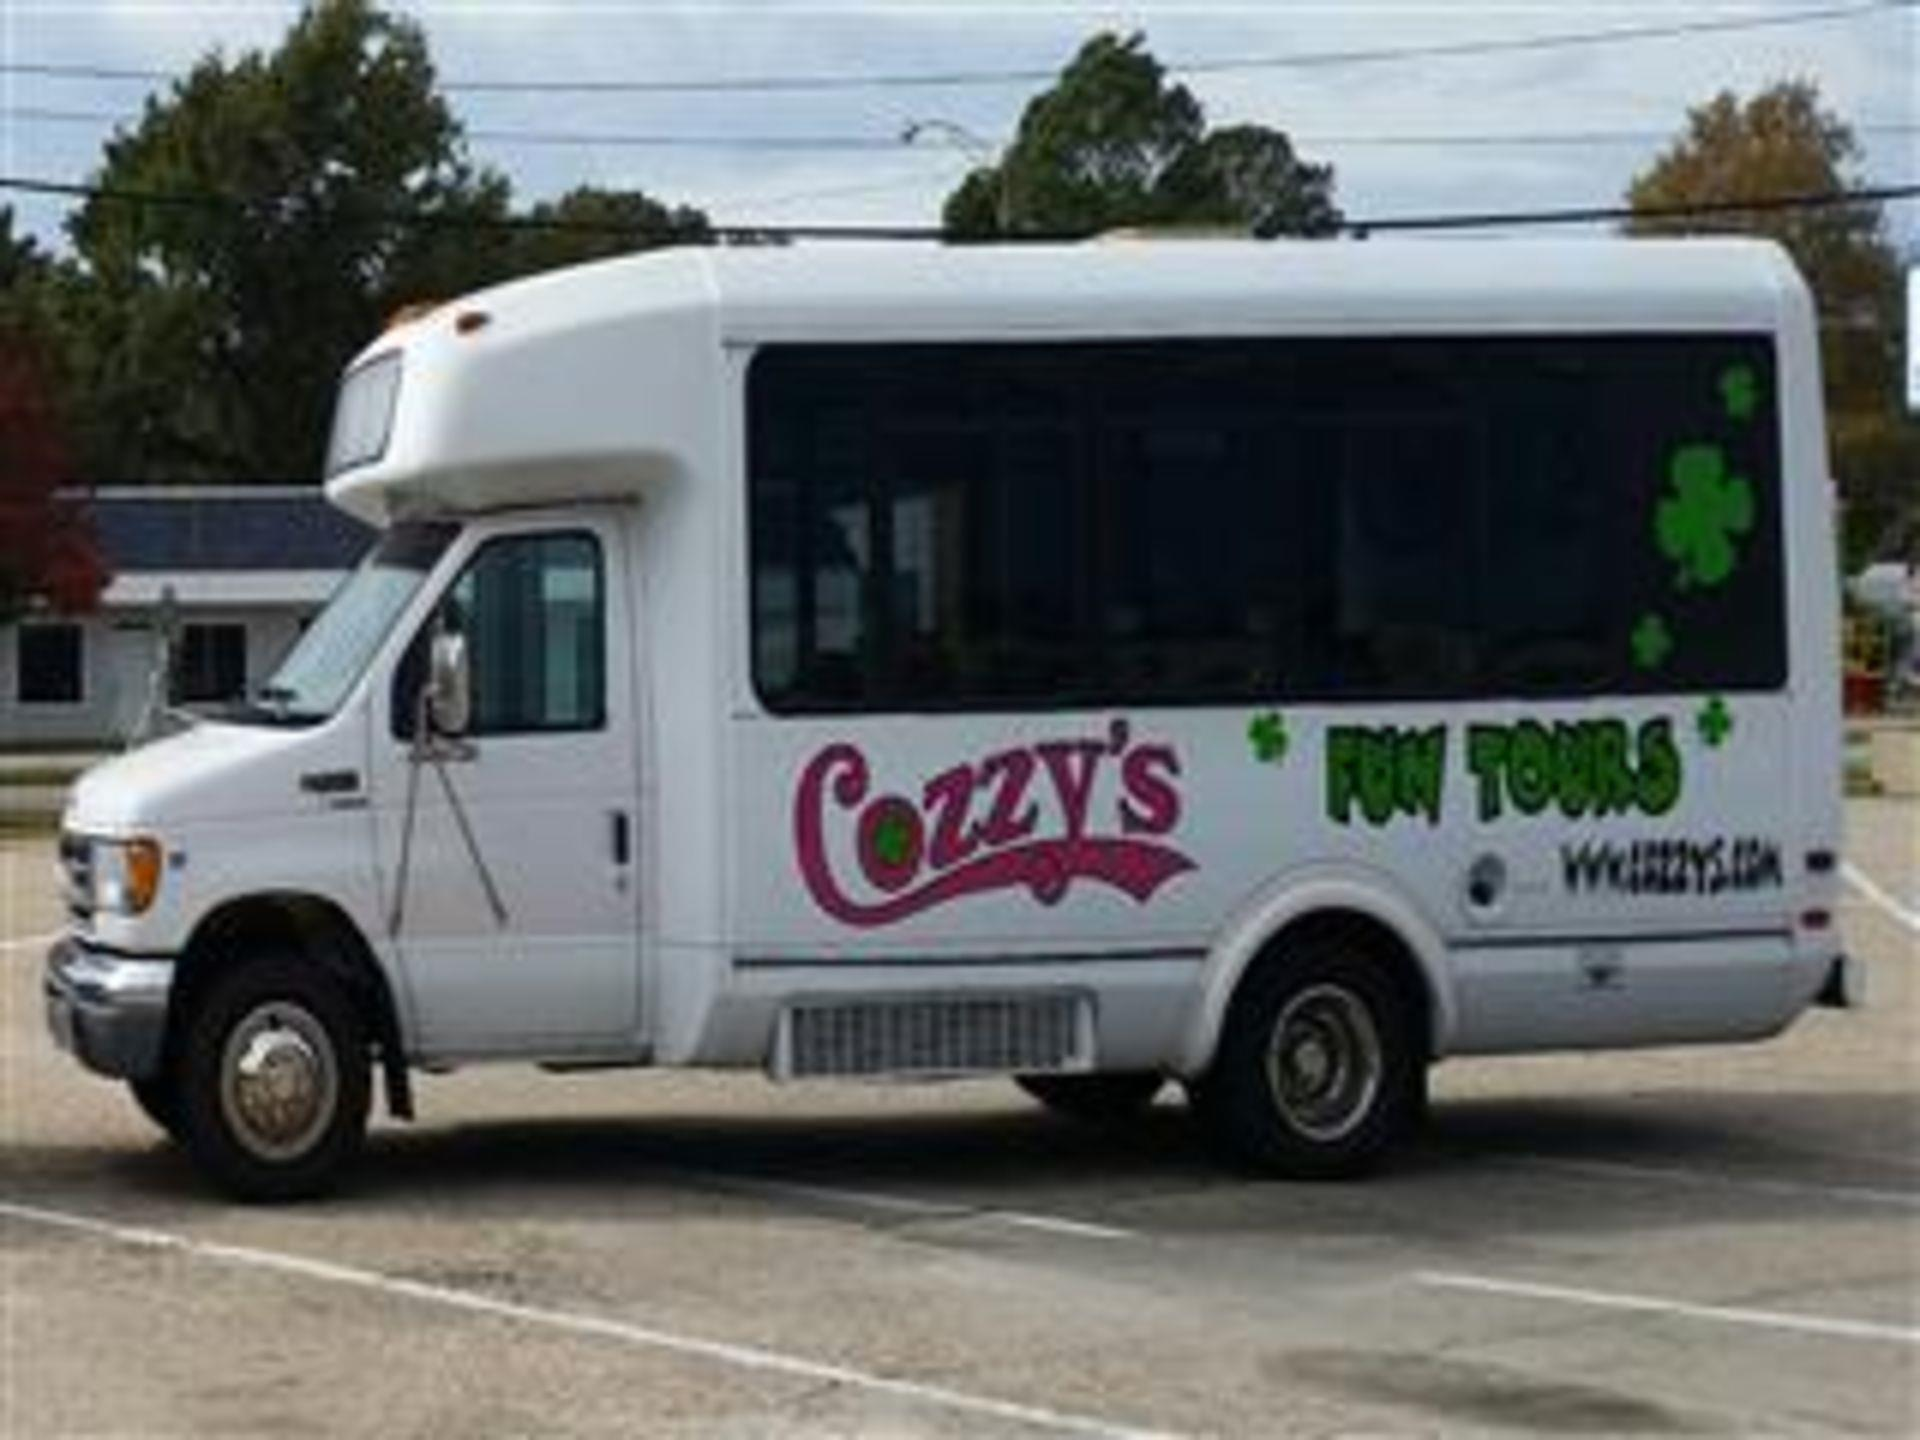 Cozzy's branded comedy tour bus